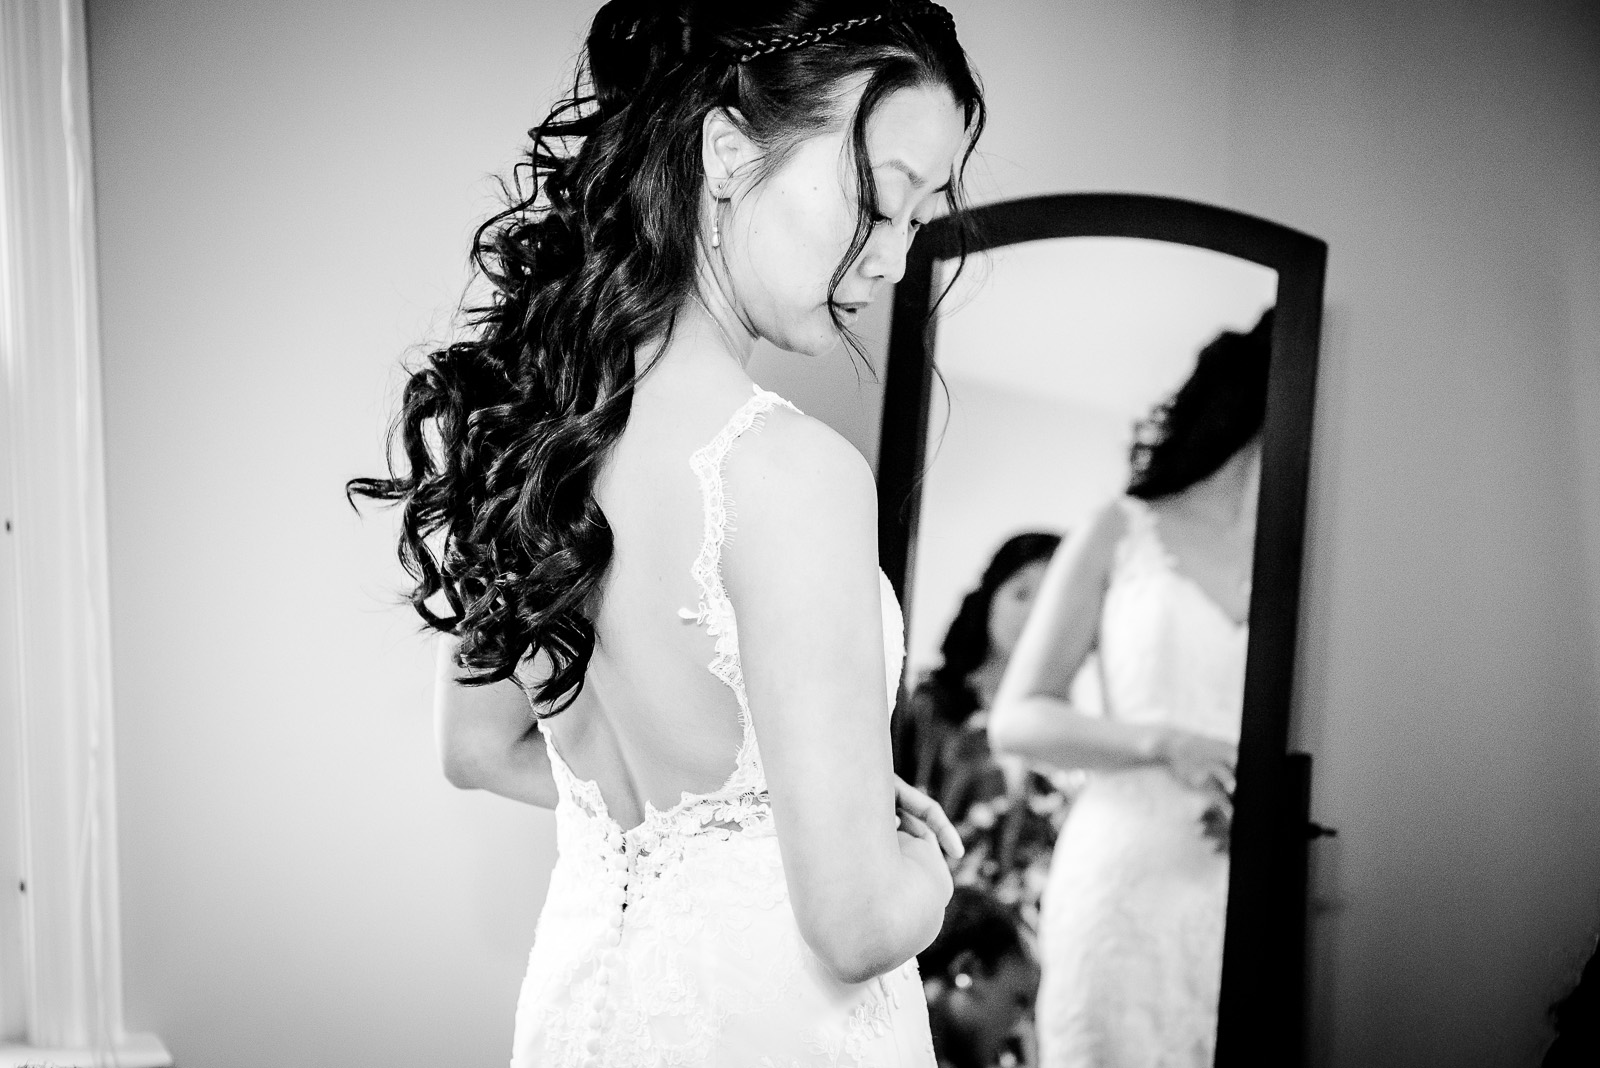 Eric_and_Christy_Photography_Blog_Wedding_Anne_Michael-3